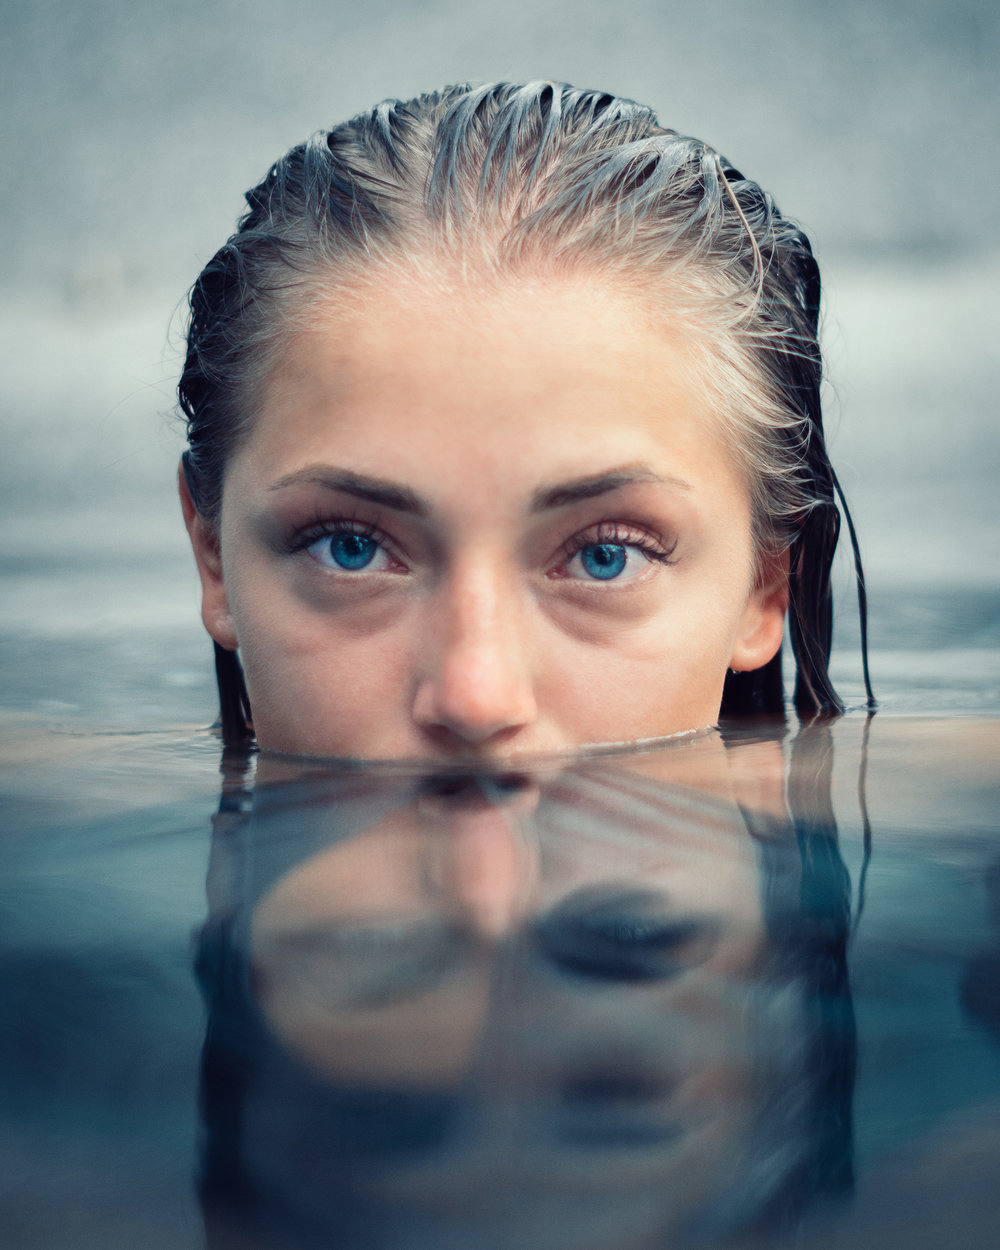 Girl with blue eyes in water